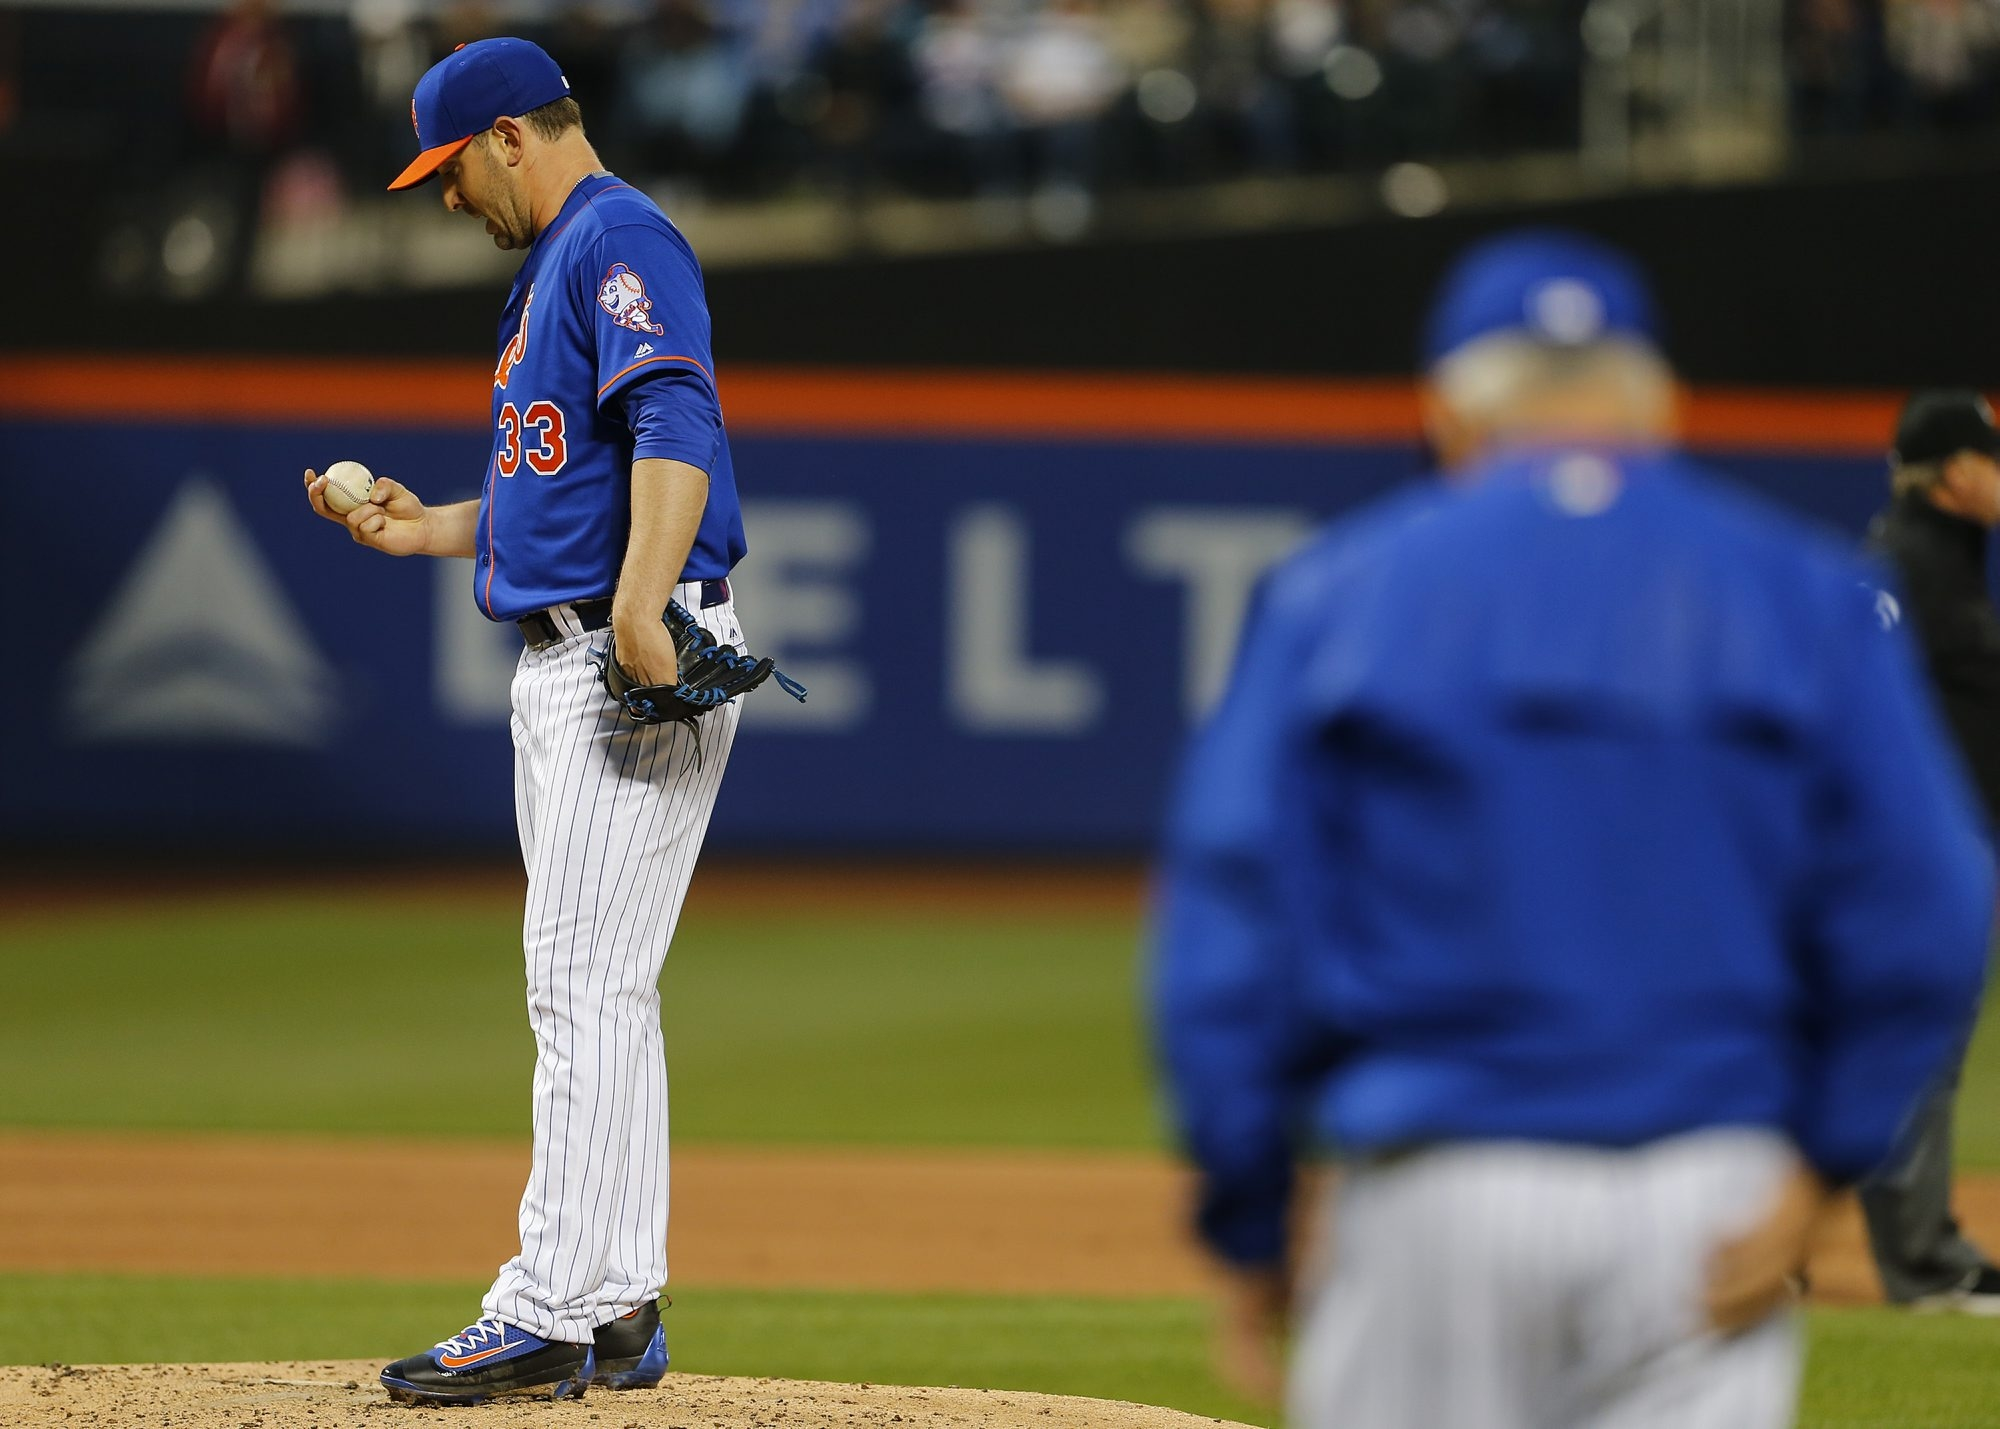 New York Mets pitcher Matt Harvey is the subject of serious questions related to his health and power.